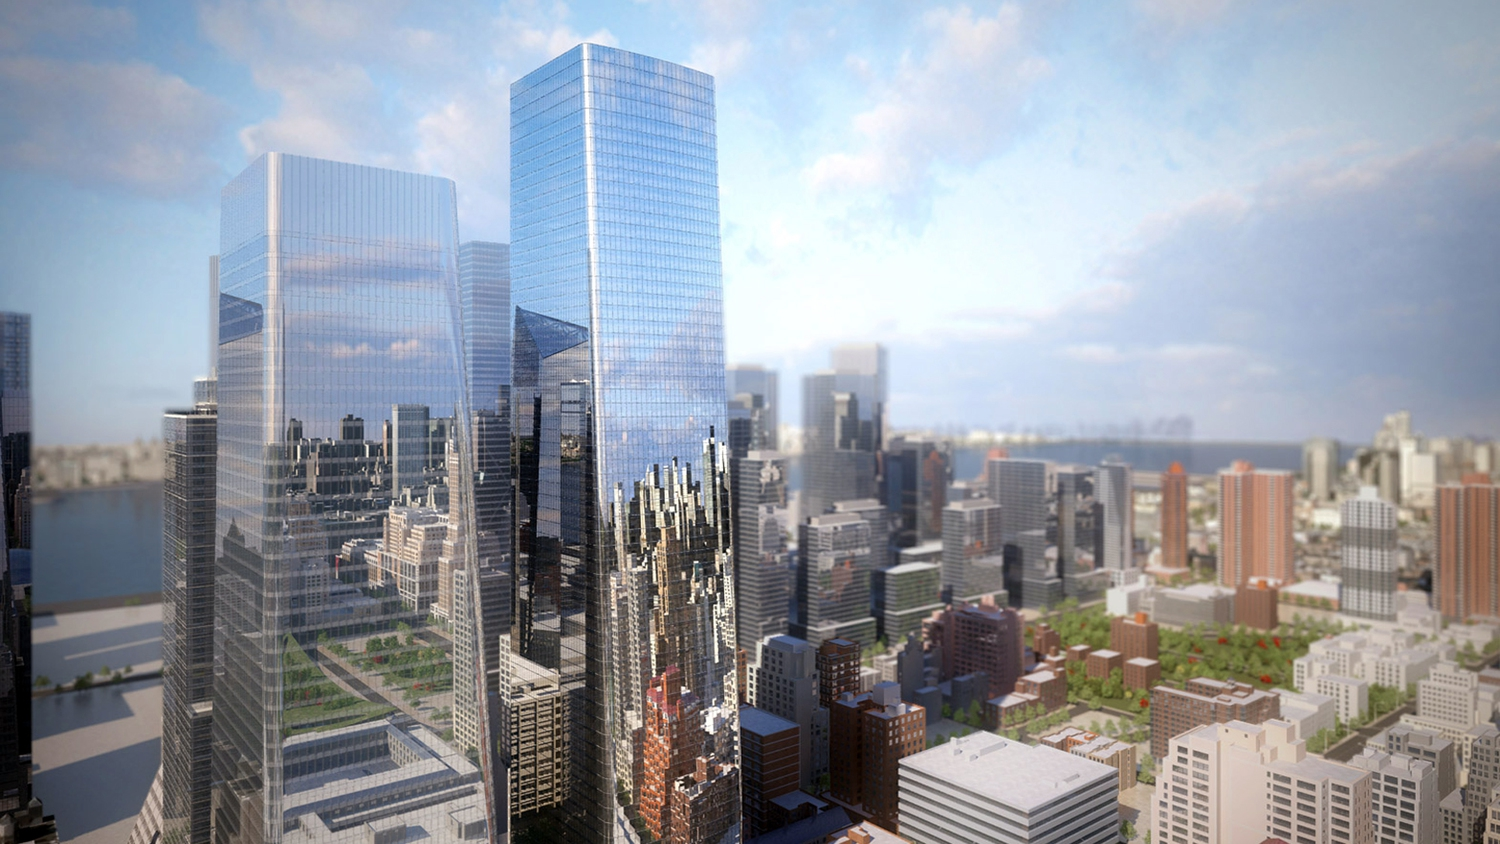 Commissioned by Brookfield Property Partners, the $4.5 billion development encompasses a trio of glass structures including a residential skyscraper and two office buildings, plus a two-acre outdoor plaza and ample commercial space.